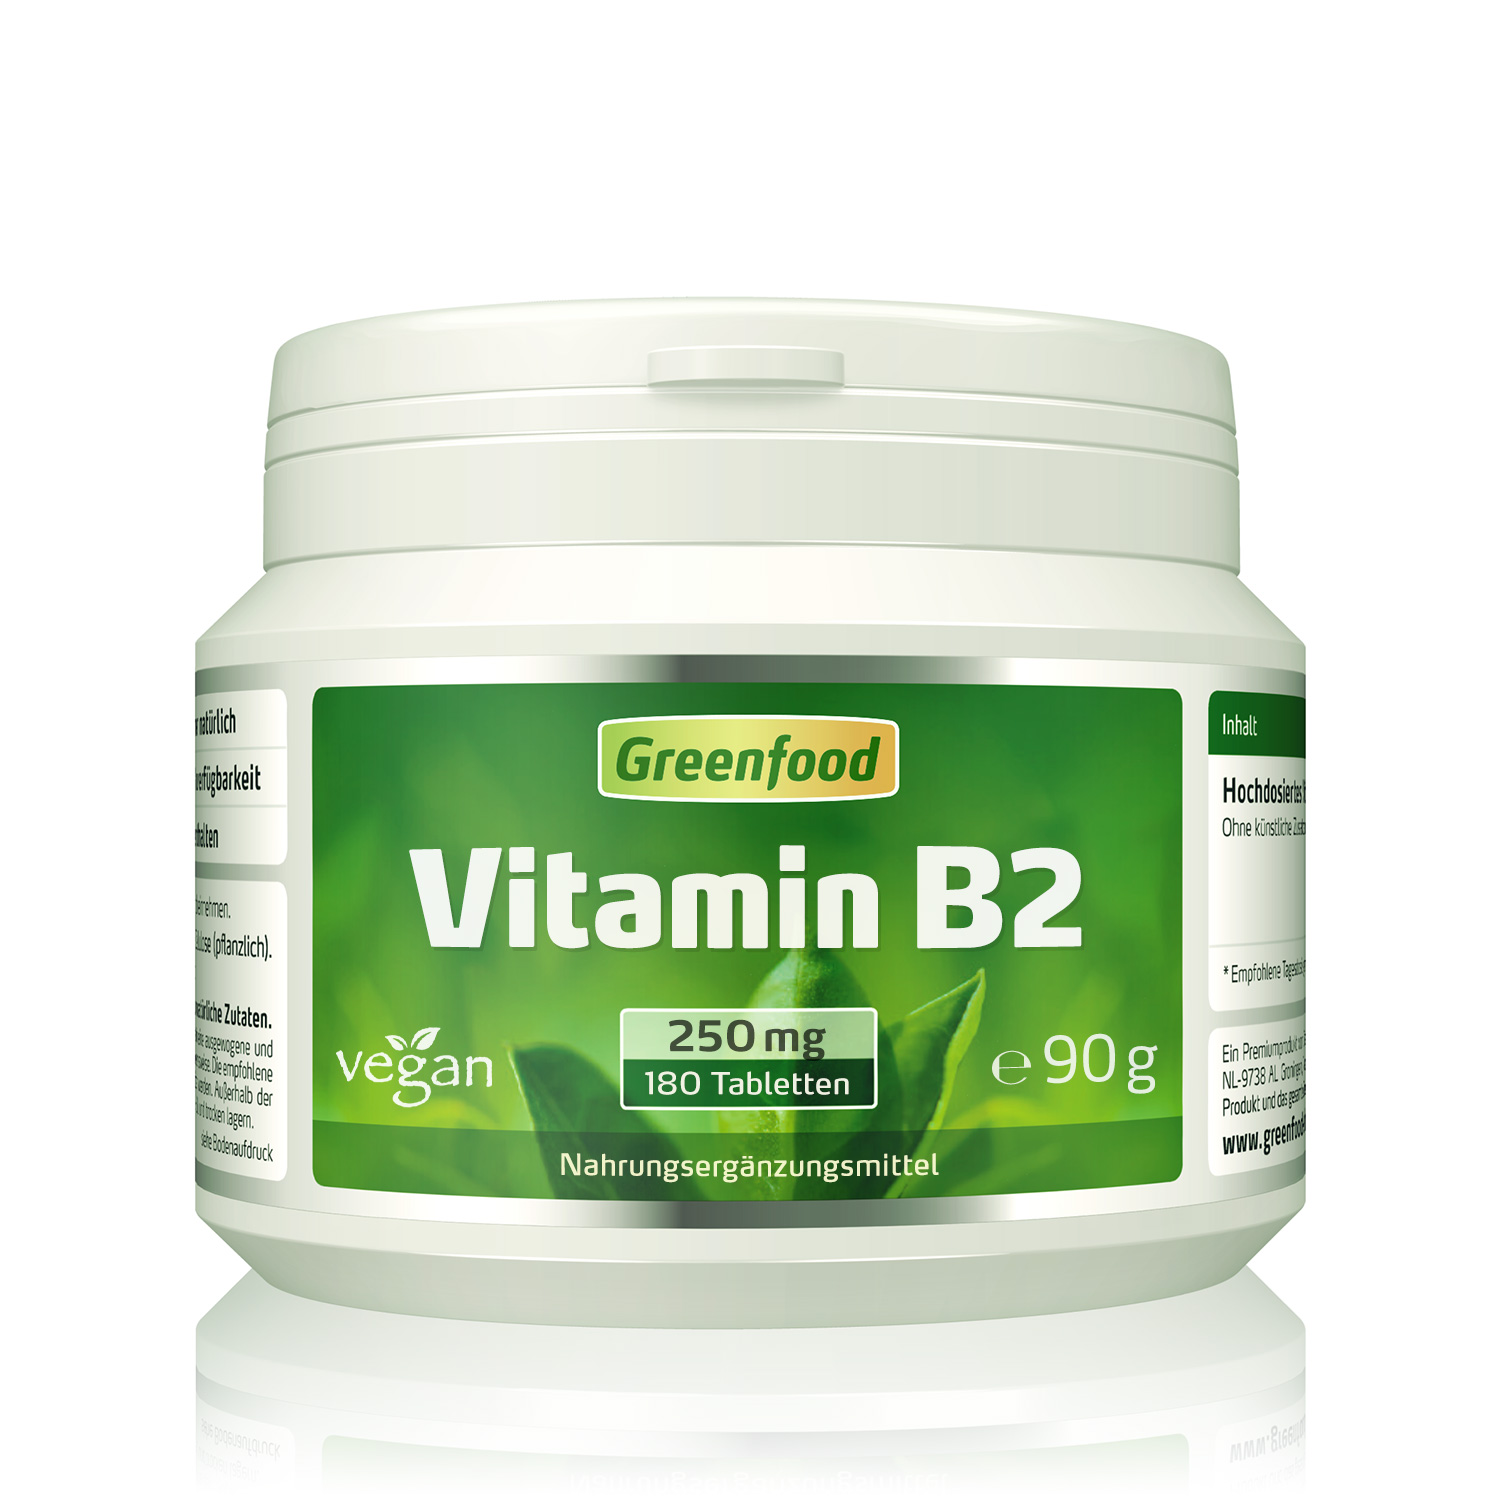 greenfood vitamin b2 250mg. Black Bedroom Furniture Sets. Home Design Ideas